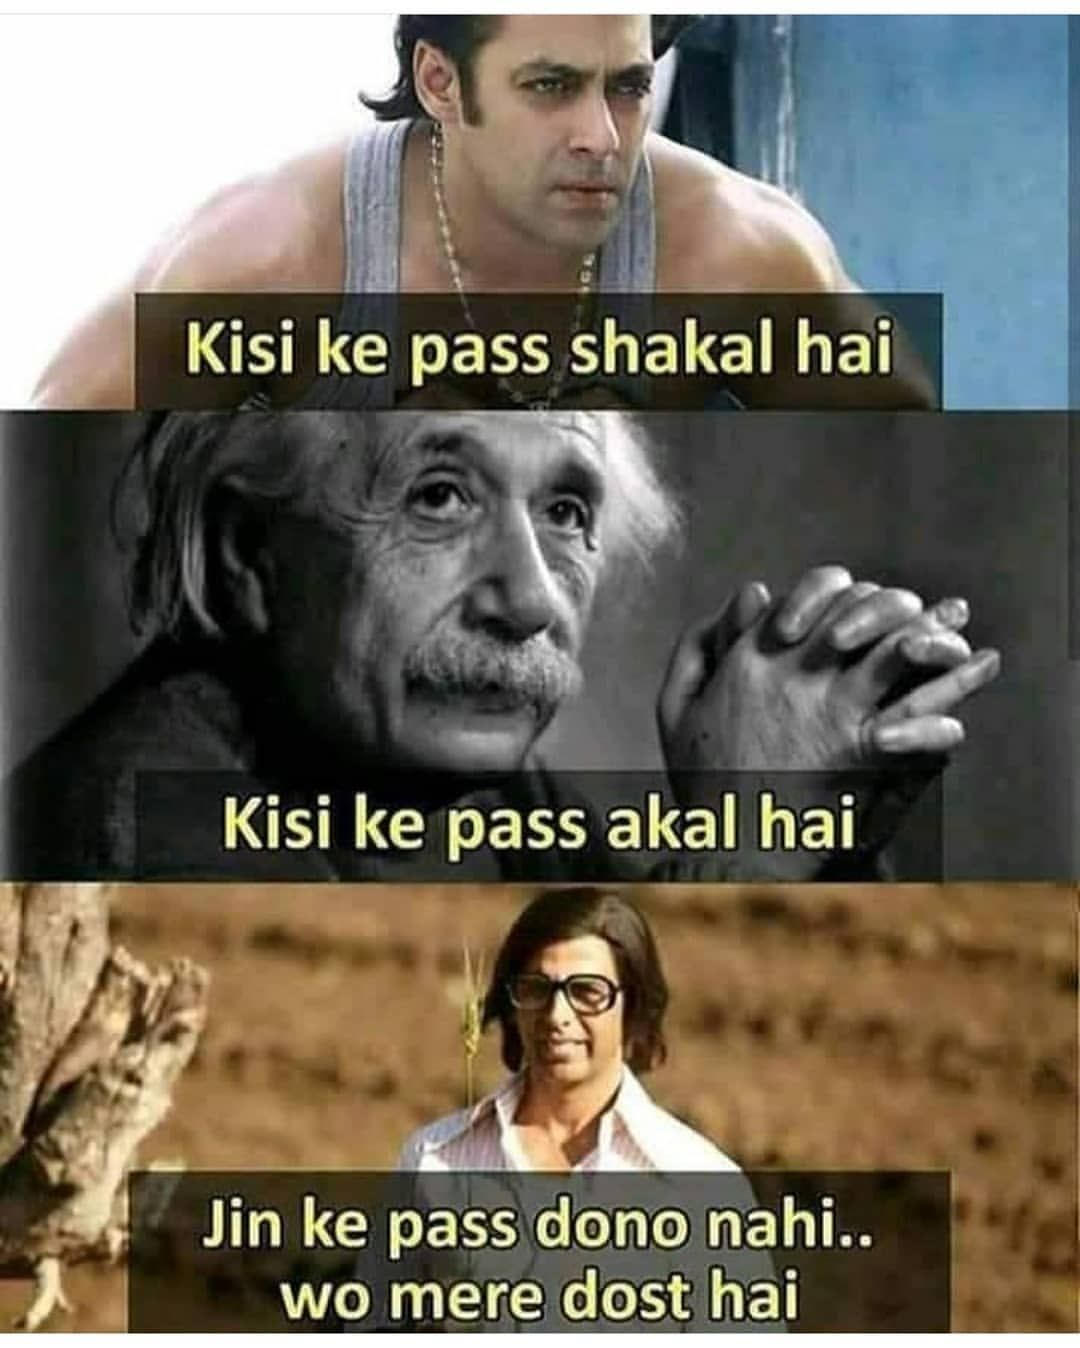 Funny Memes In Hindi Funny Facebook Meme Images Pictures Download Funny Baby Memes Latest Funny Jokes Really Funny Memes